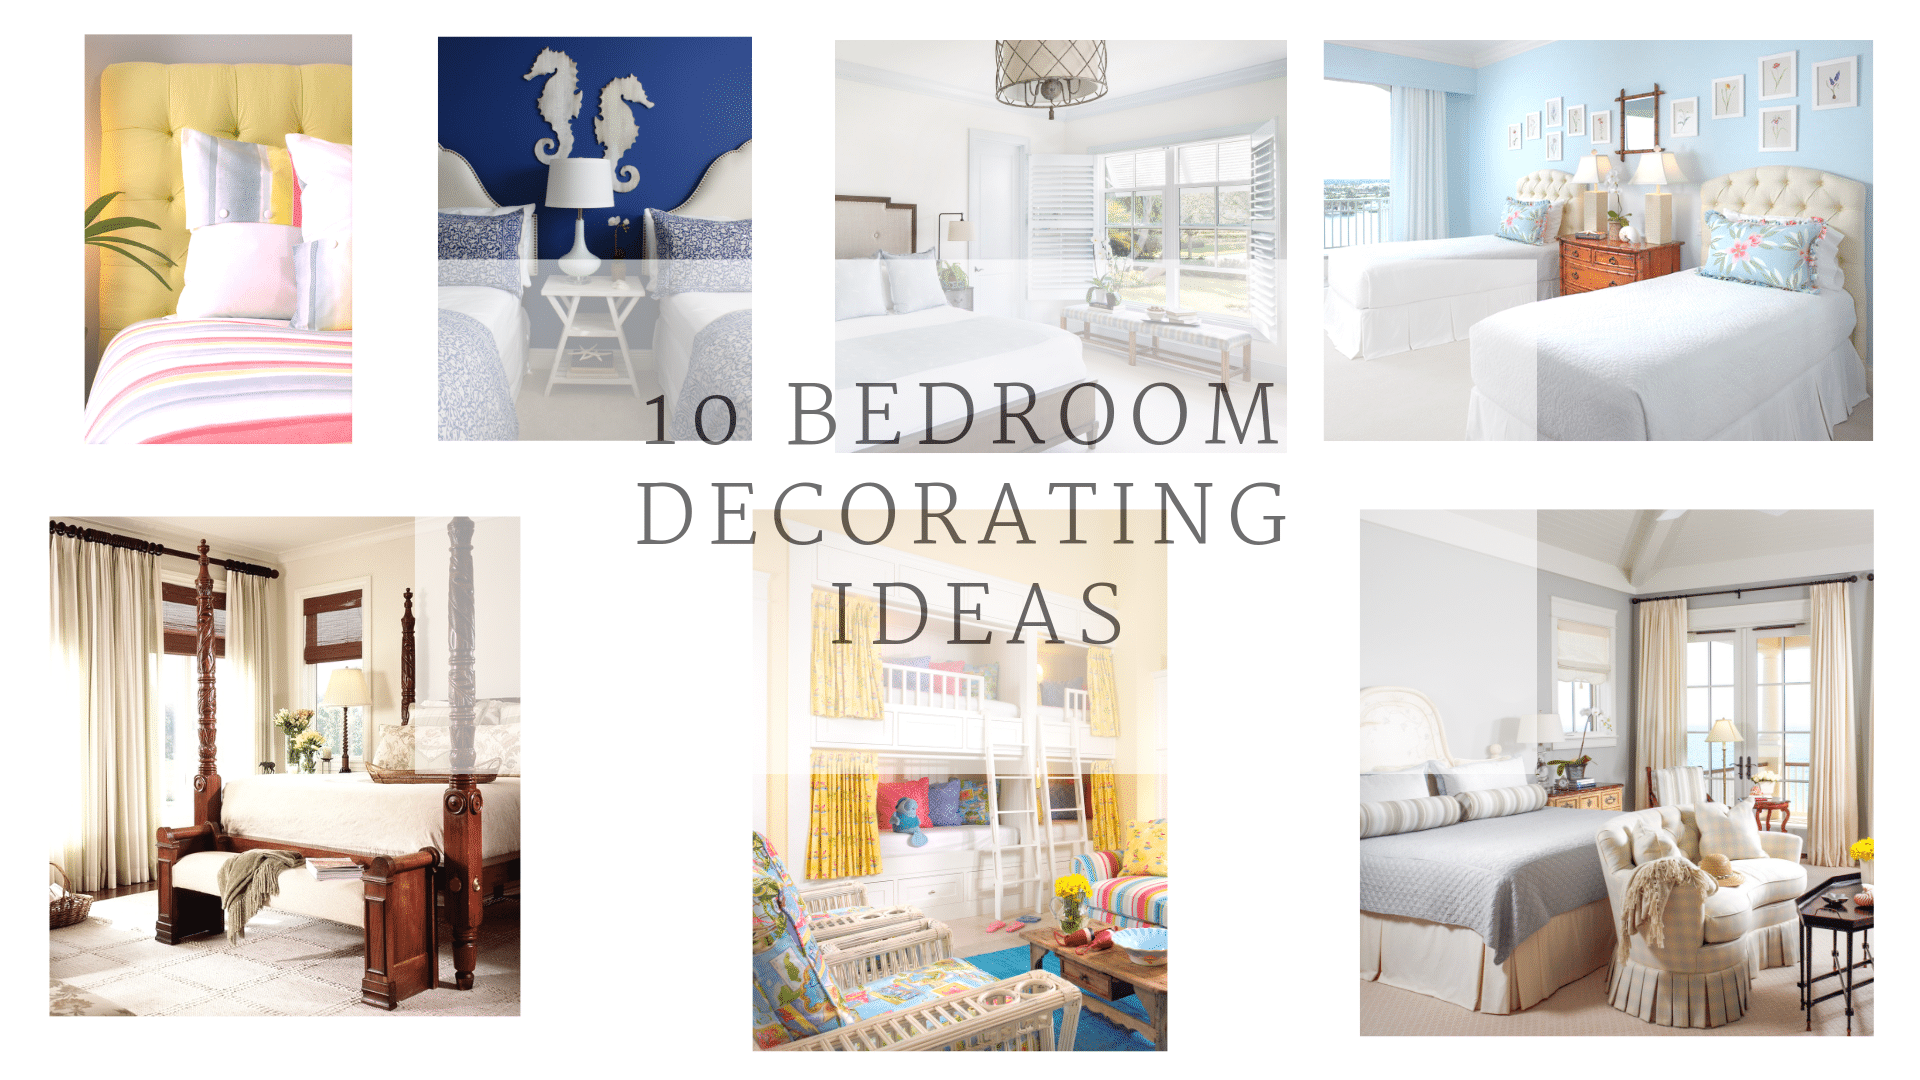 Jill Shevlin Design Ten Bedroom Decorating Ideas from my design portfolio Vero Beach Interior Designer